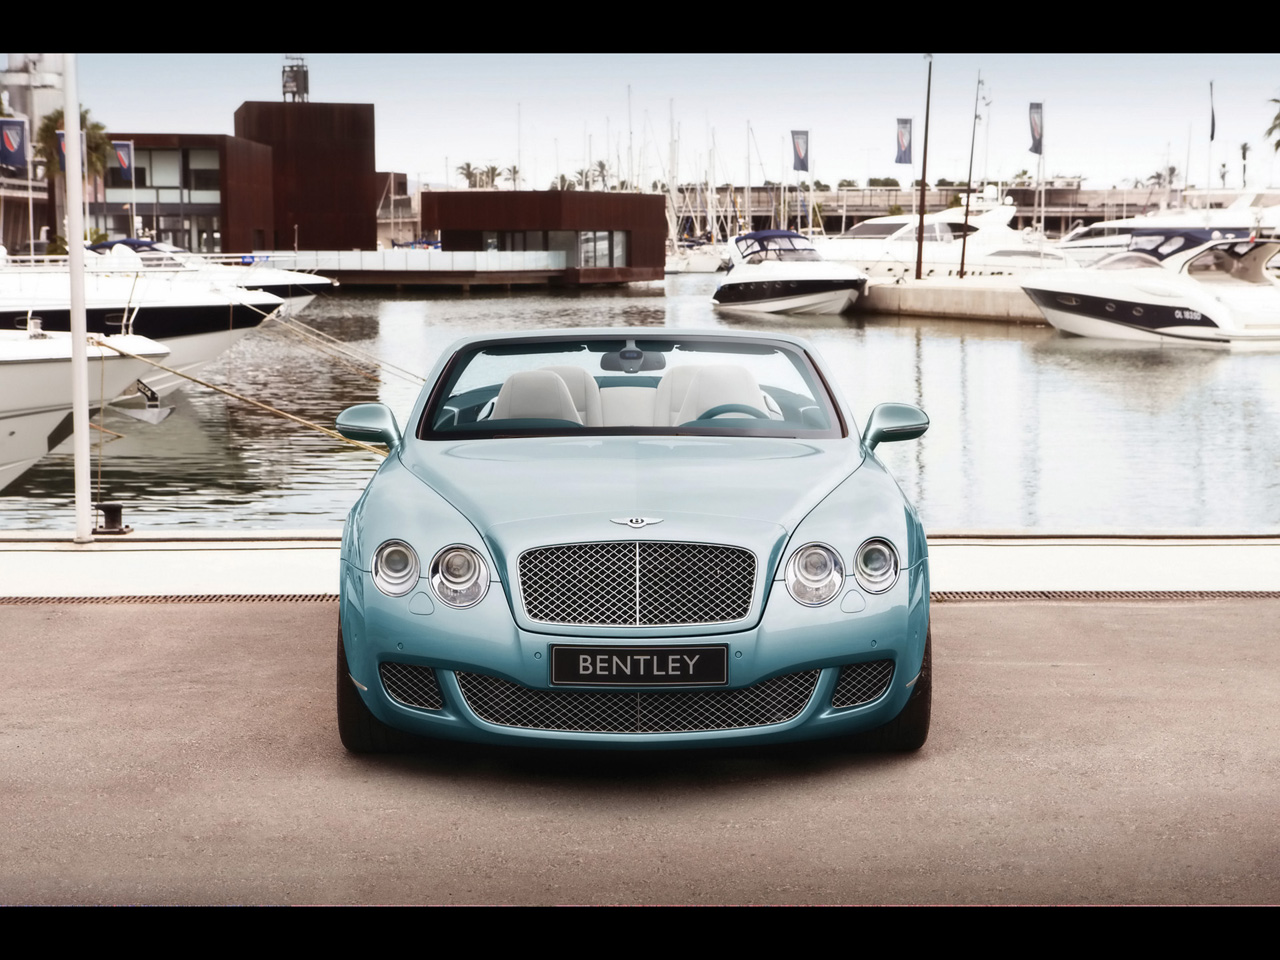 2009 Bentley Continental Gt Speed #17